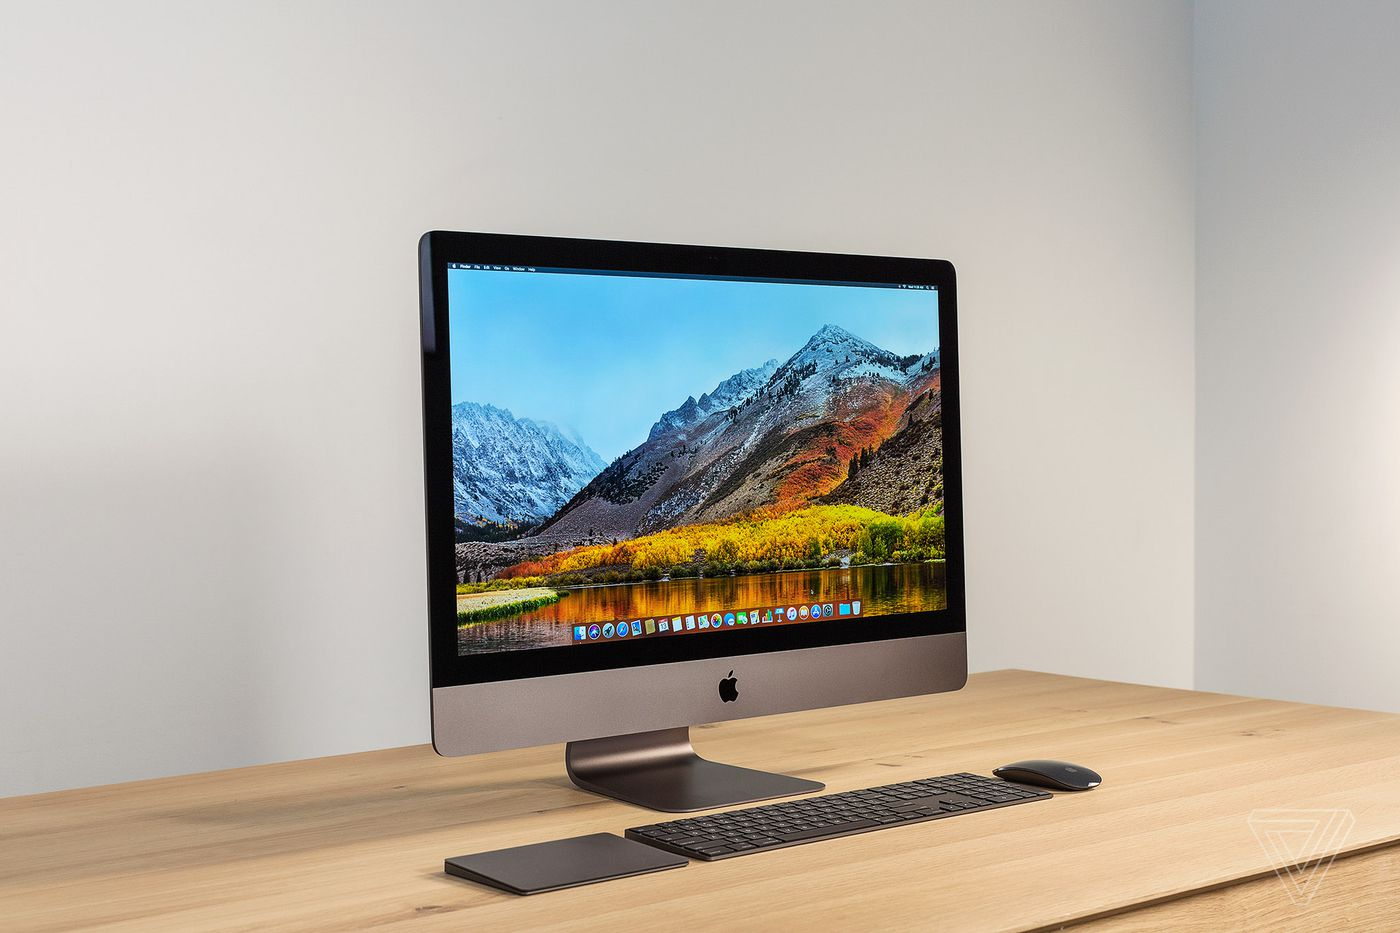 The new Mac Pro is Apple's chance to make a PC - The Verge